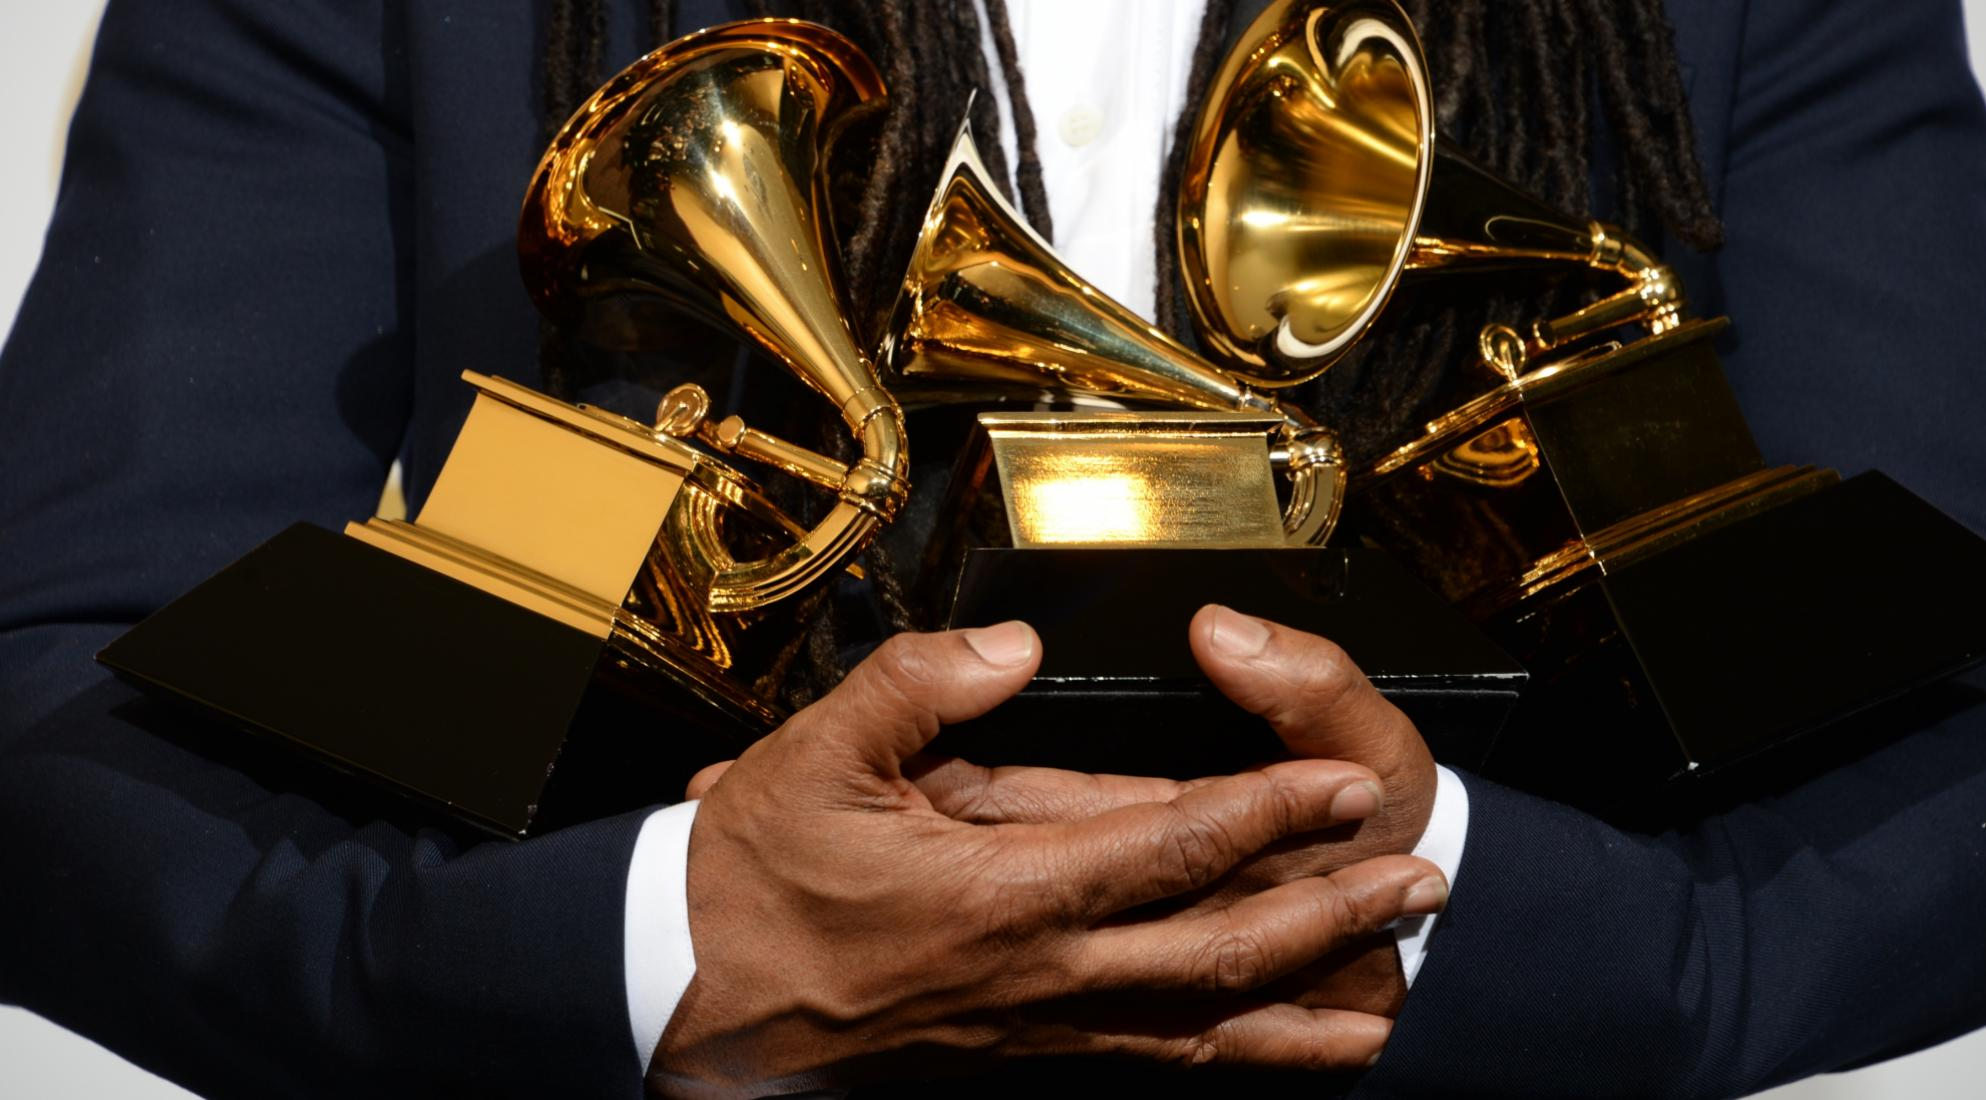 GRAMMY Awards in arms